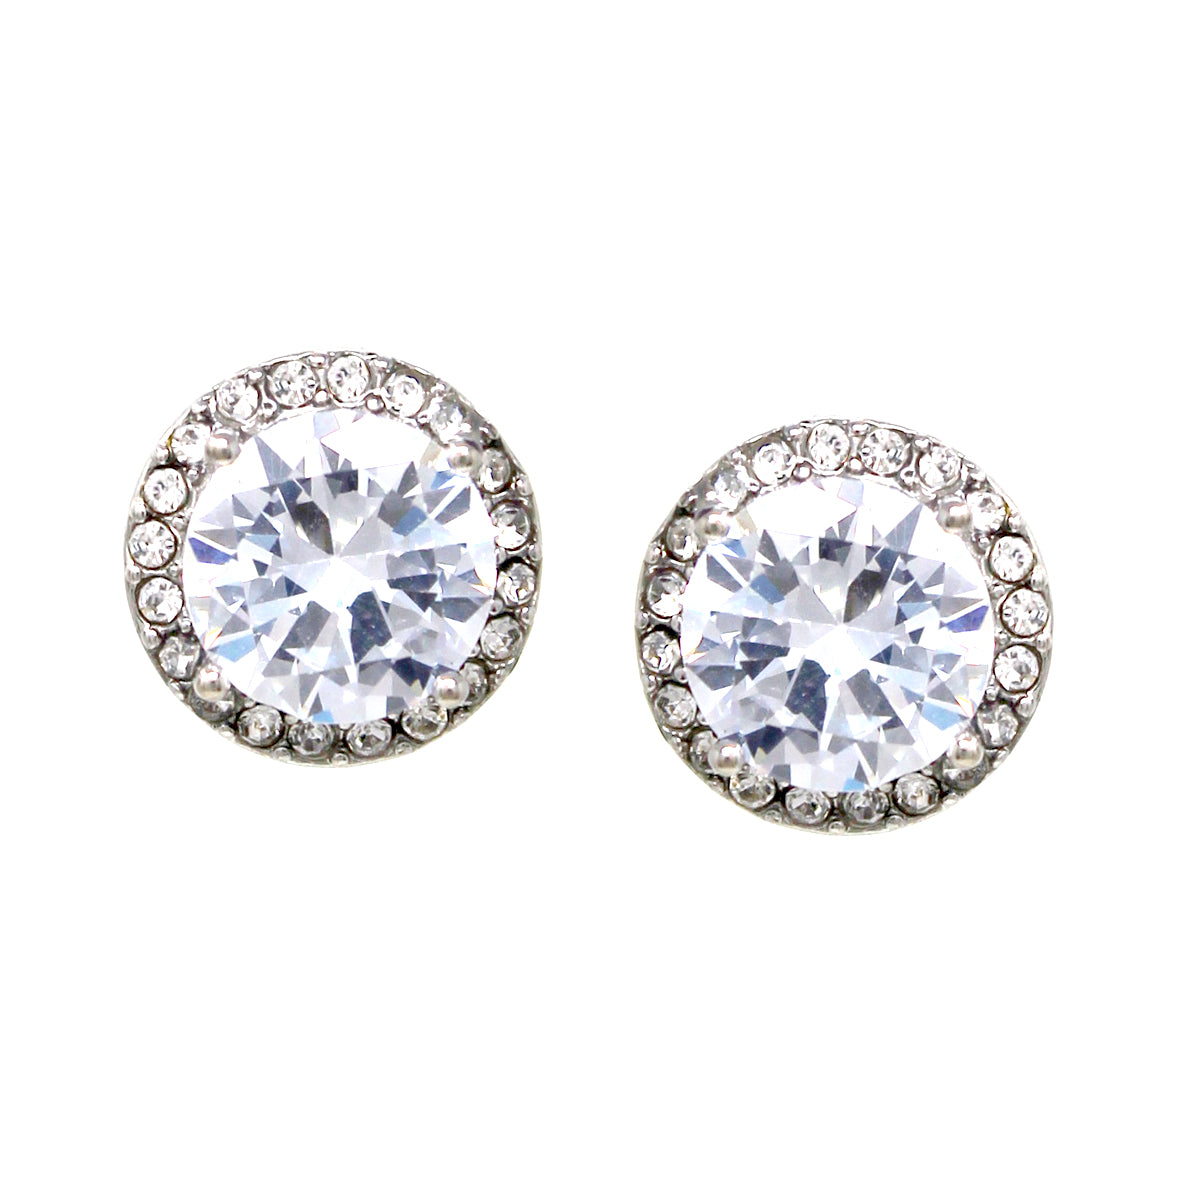 Premium Cubic Zirconia Round Stud Earrings (14 mm)